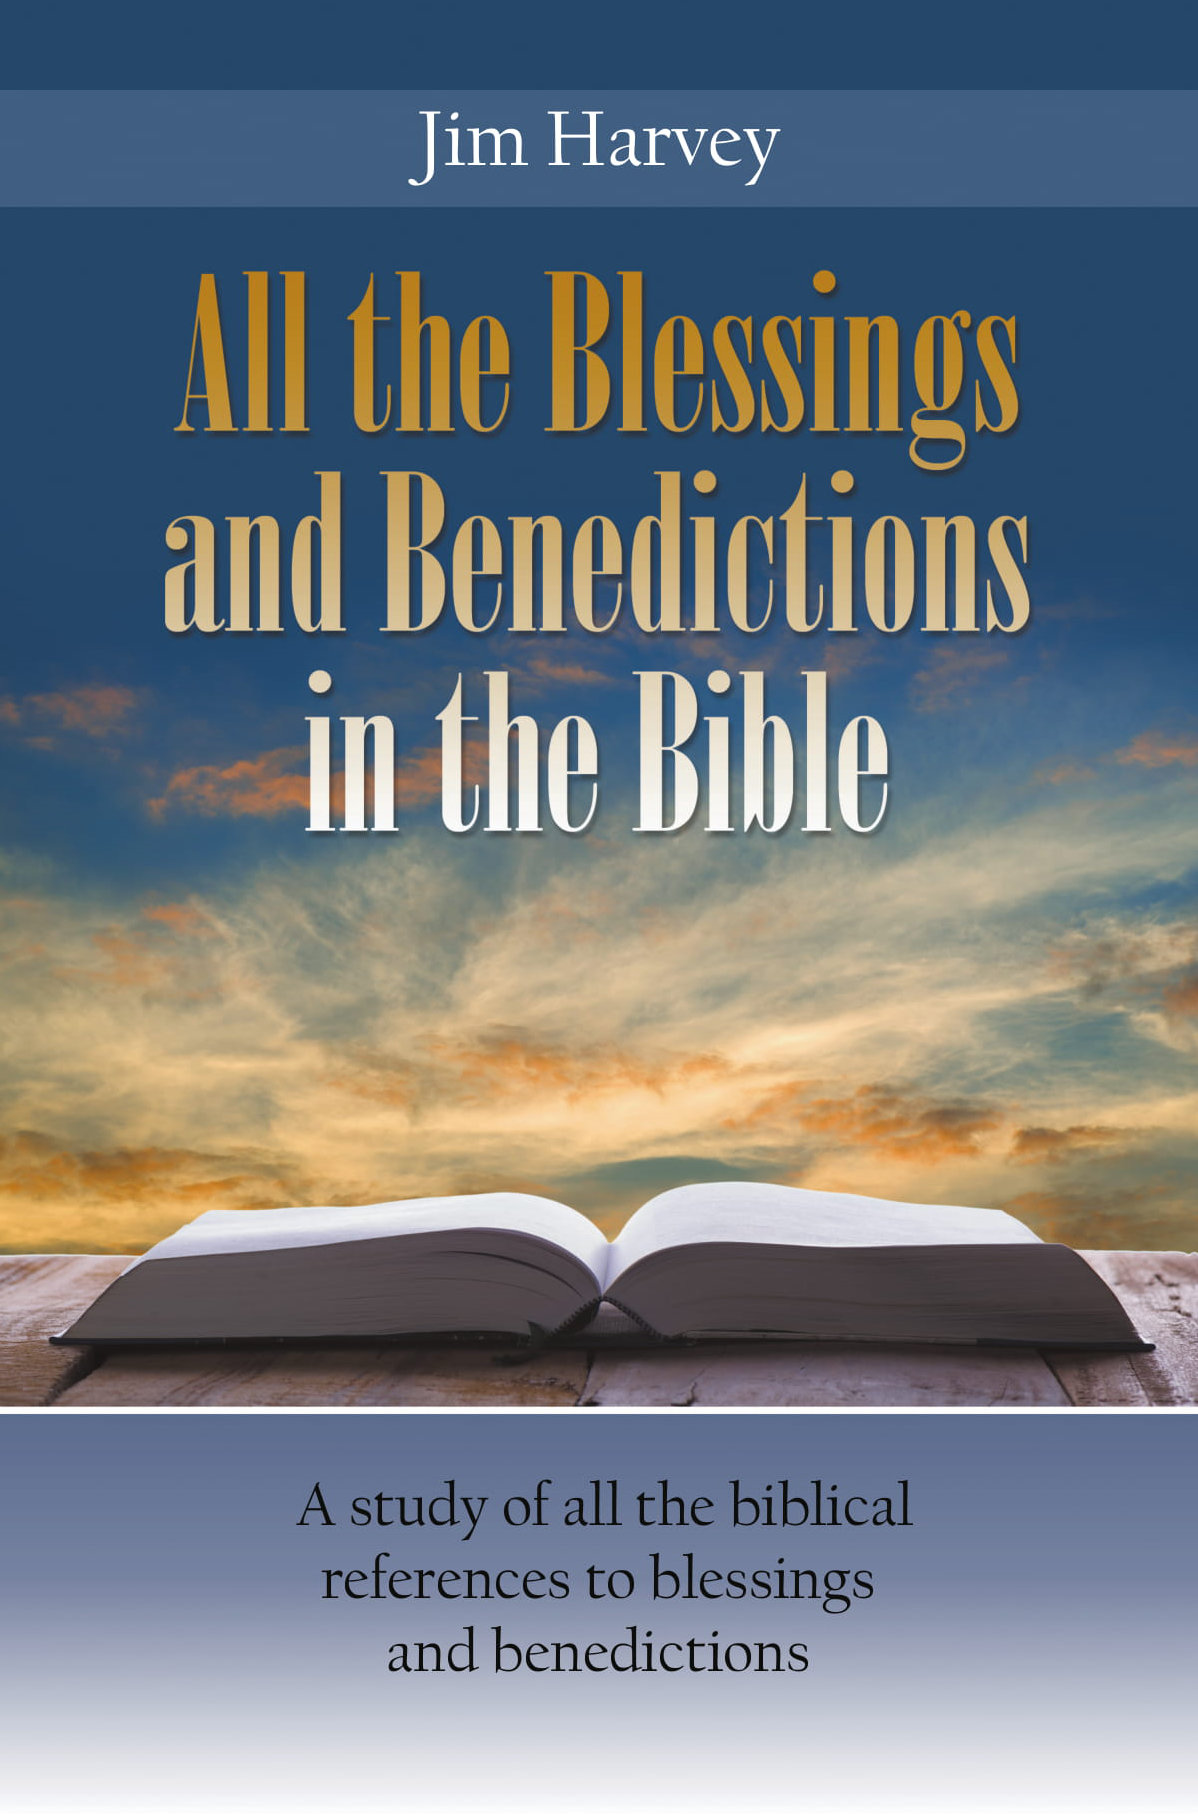 All the Blessings and Benedictions in the Bible: A study of all the